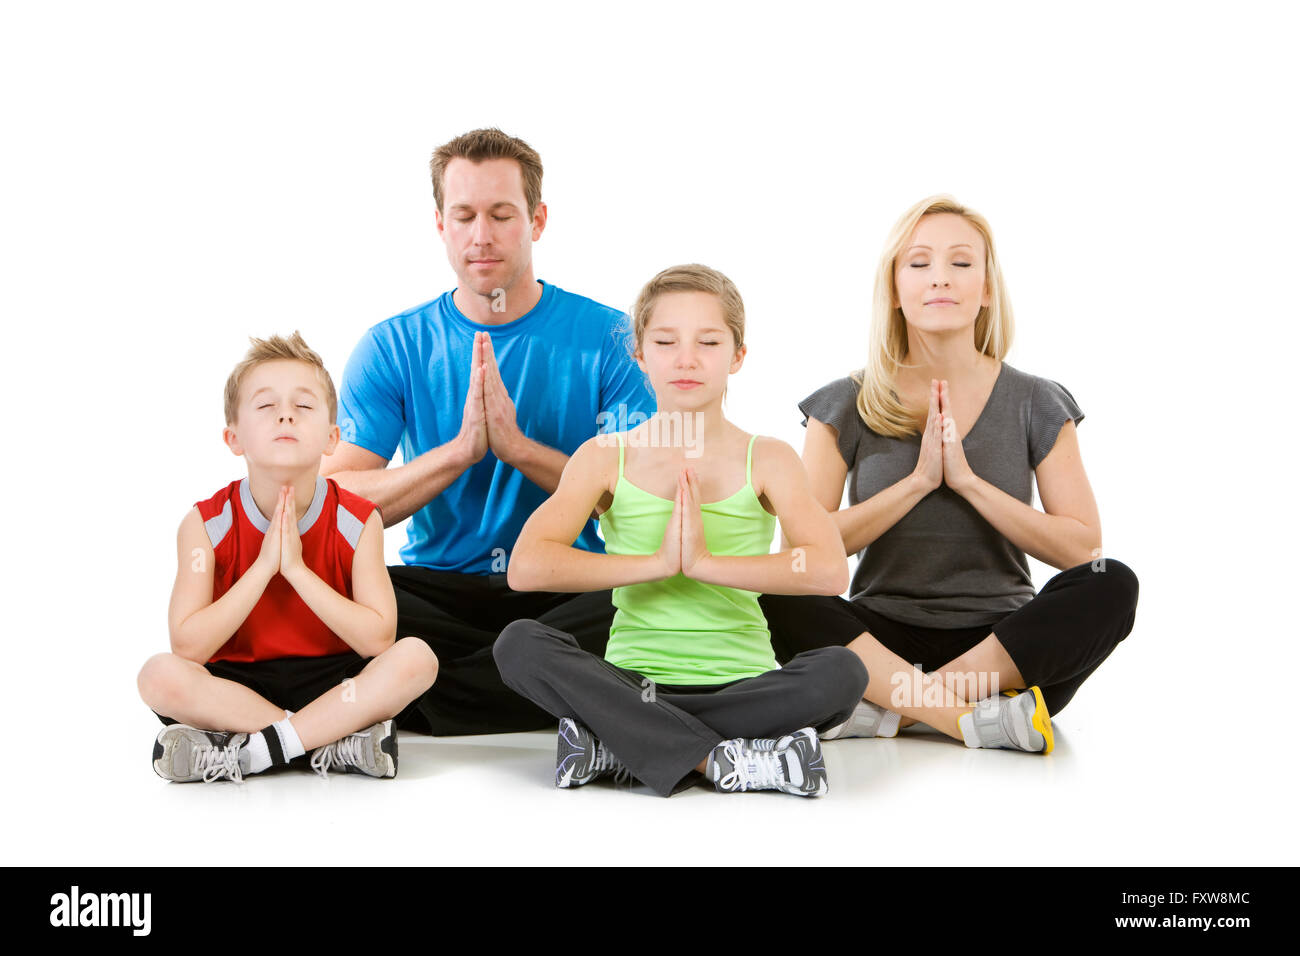 Isolated on white series of a Caucasian nuclear family in casual wear, and fitness clothing.  Mom, dad, brother - Stock Image